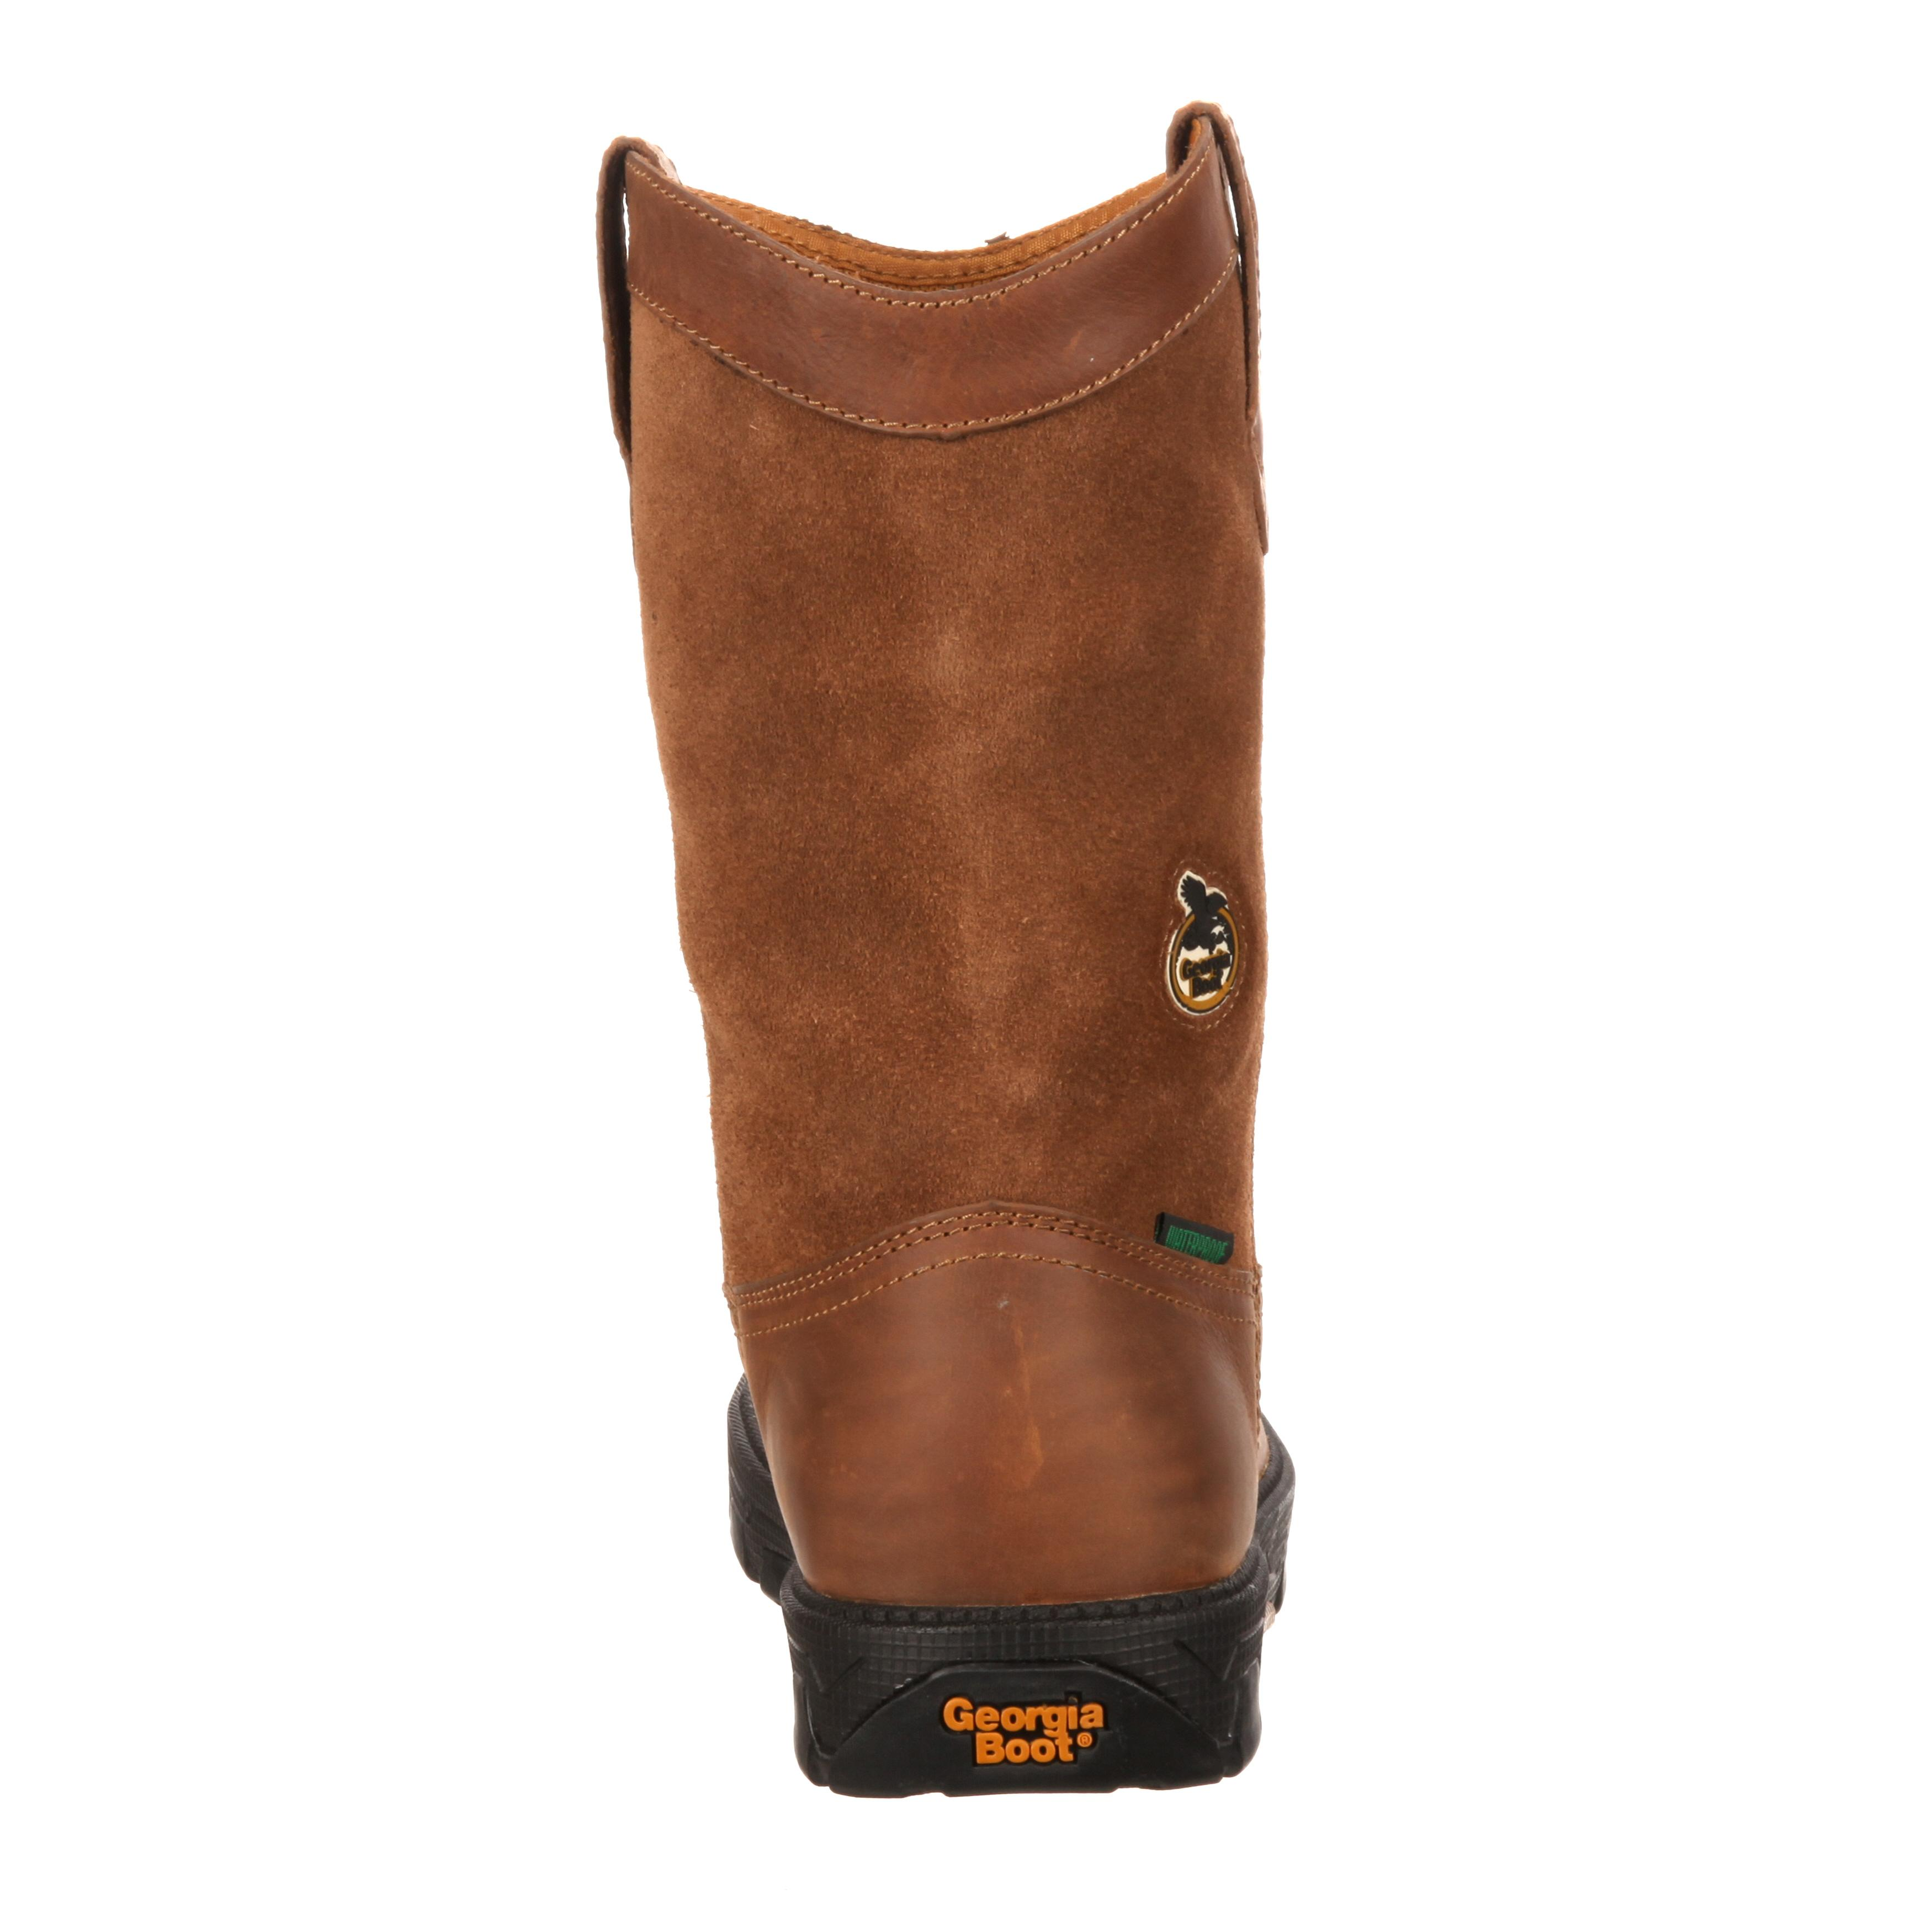 c472bfe1ad9 Georgia Suspension System Waterproof Wedge Wellingtons. Most ...